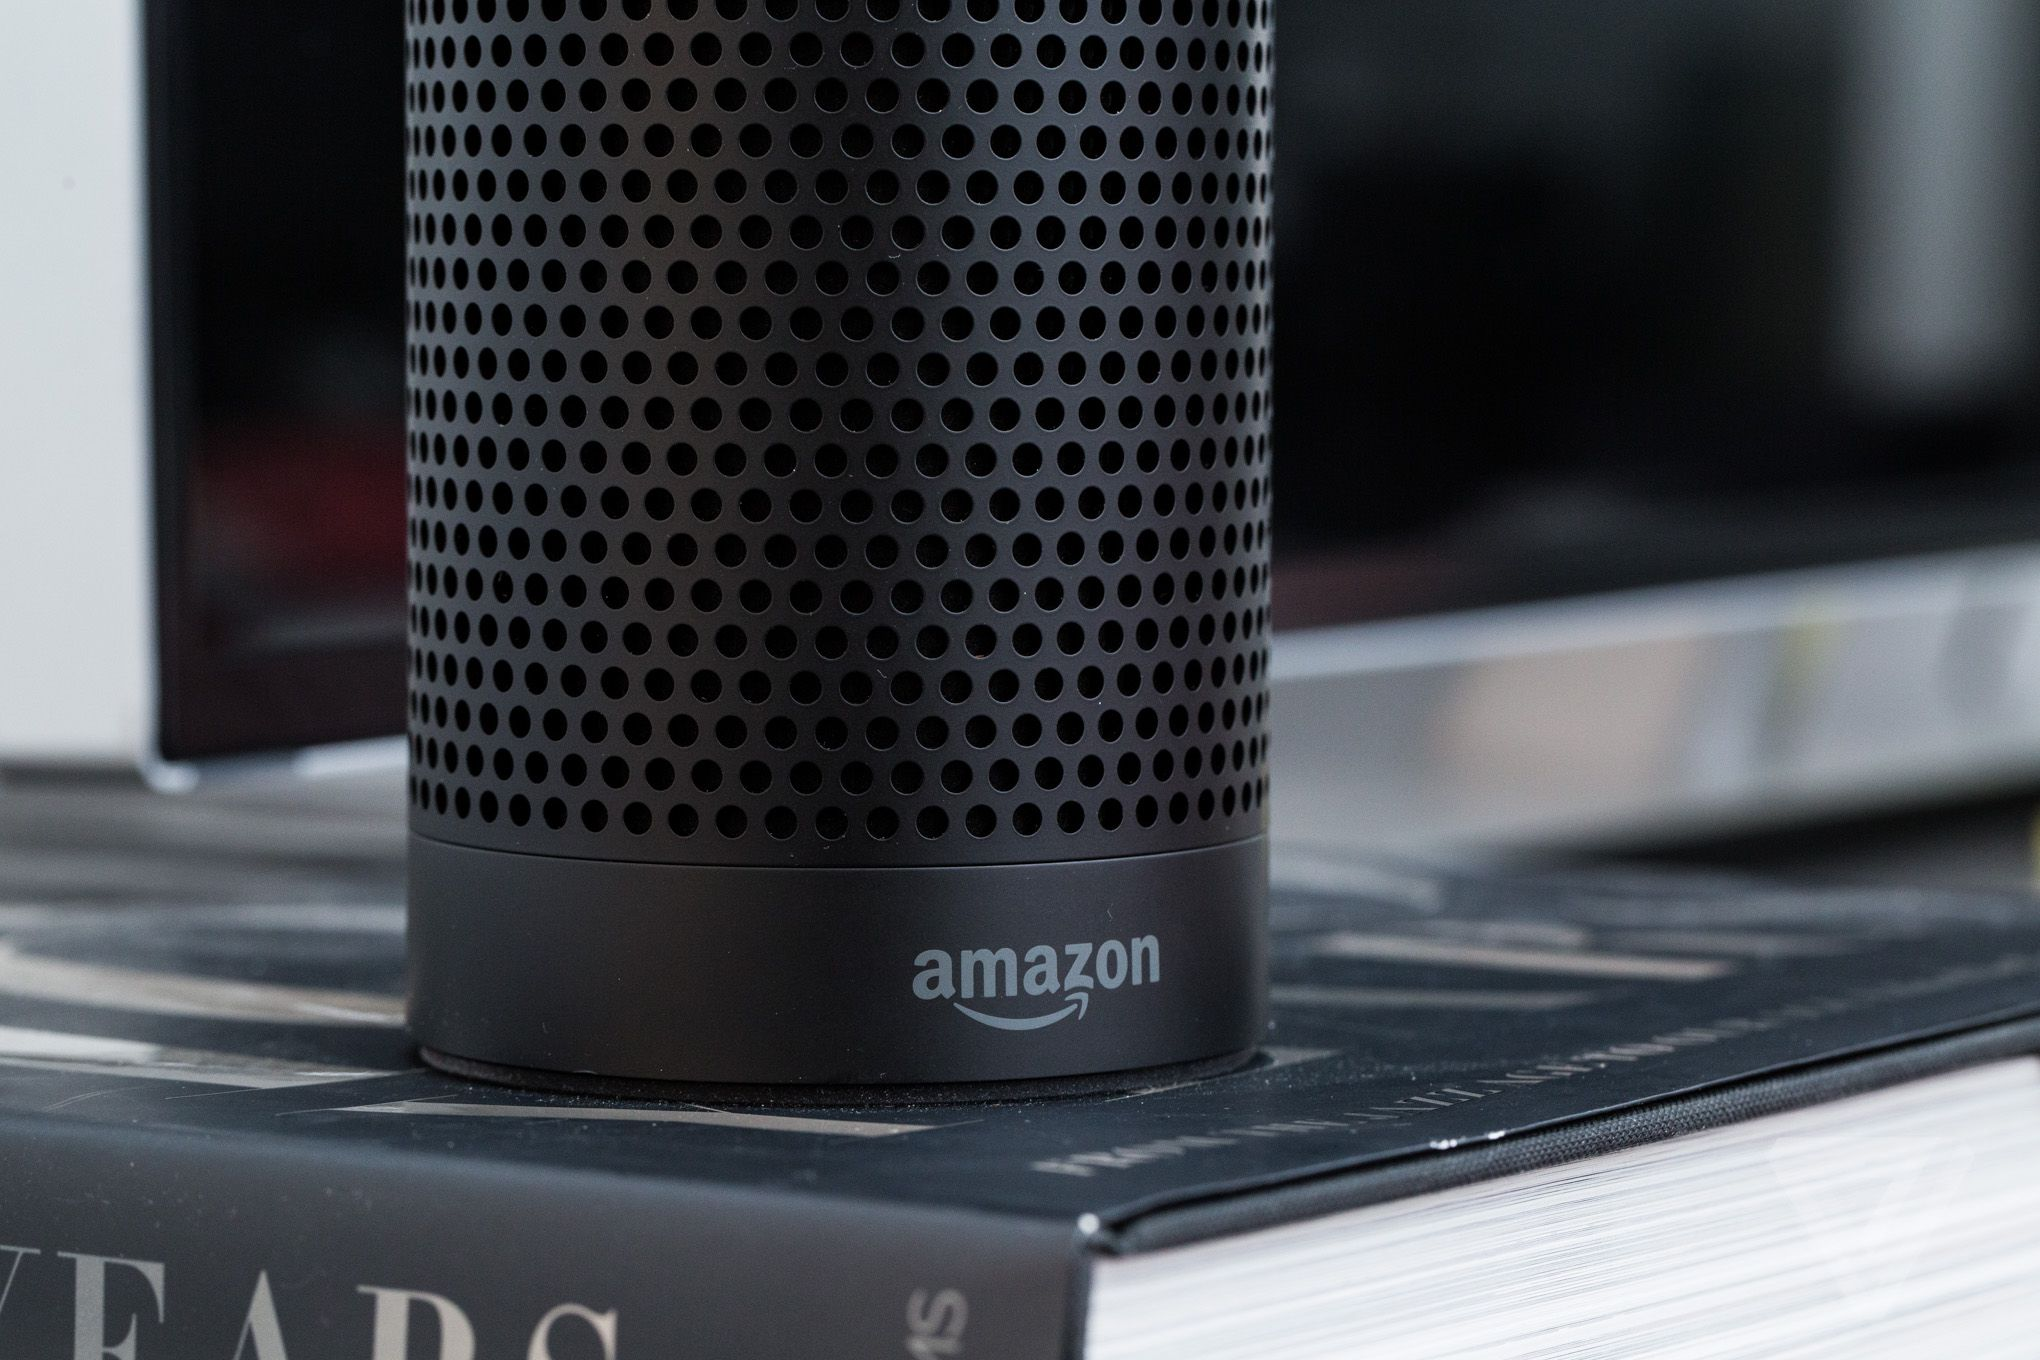 Amazon Echo review: listen up | The Verge